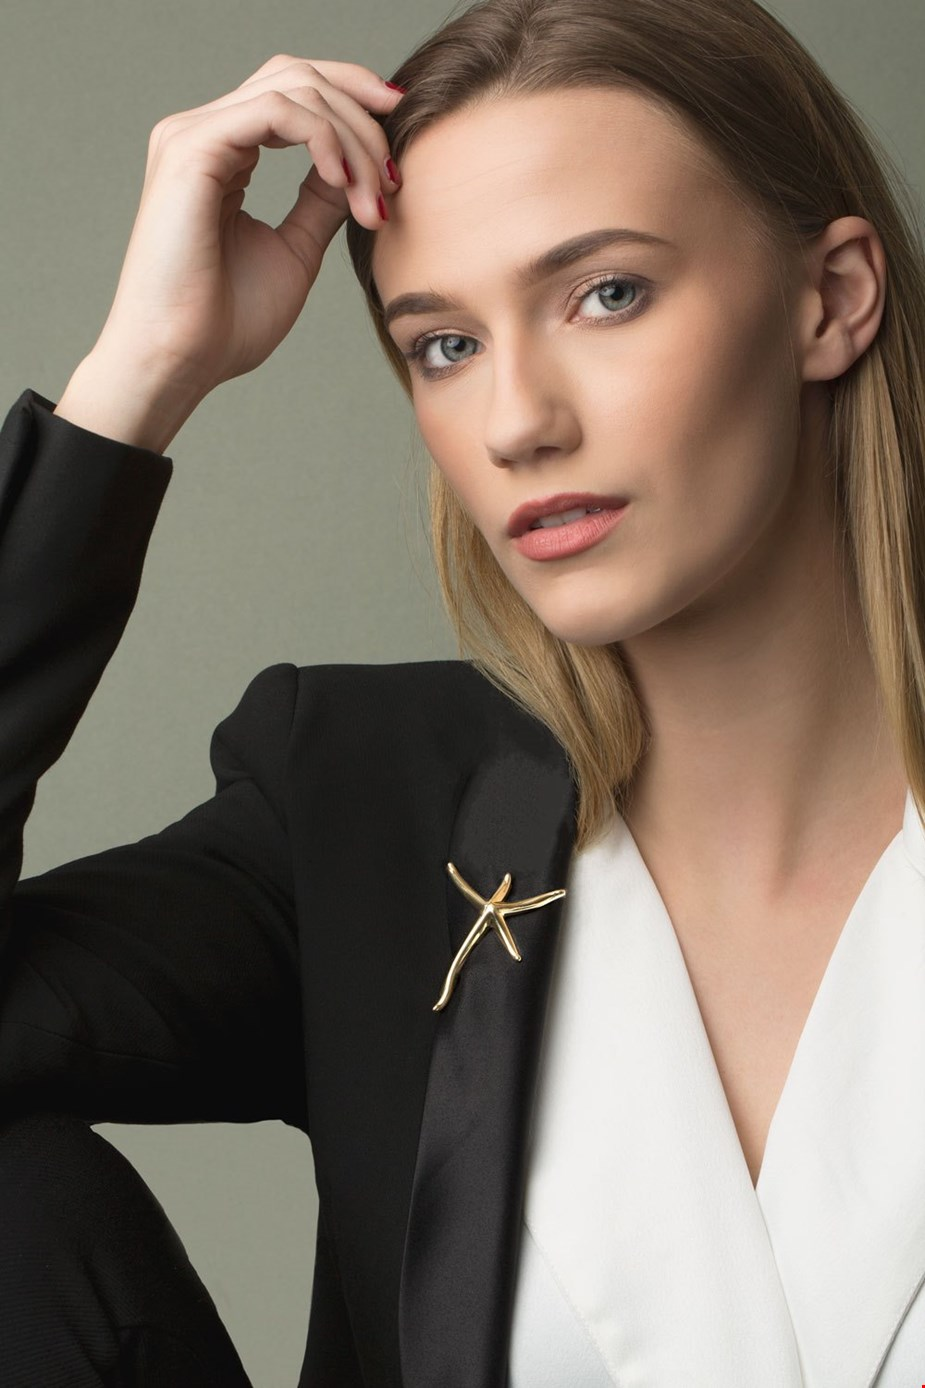 The Art of Wearing Brooches